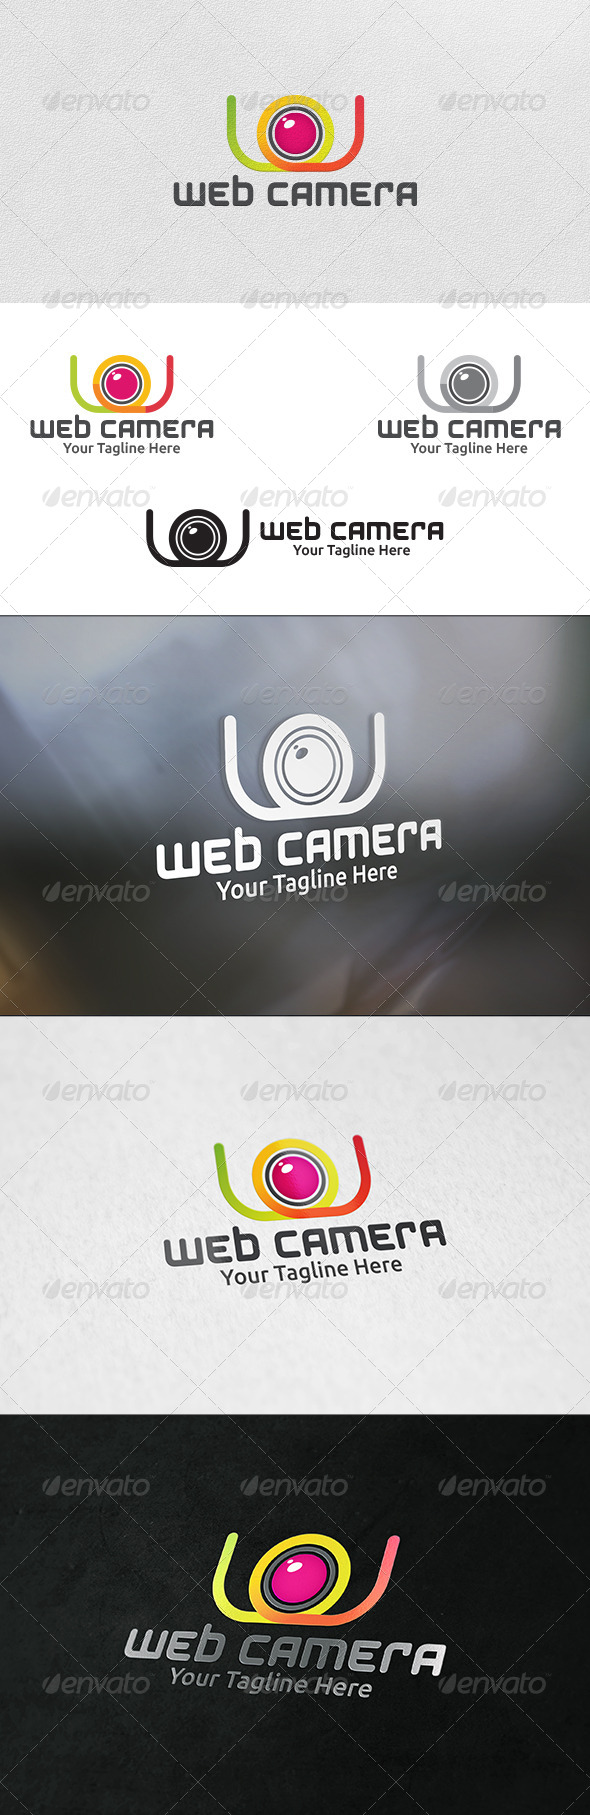 GraphicRiver Web Camera Logo Template 6177963